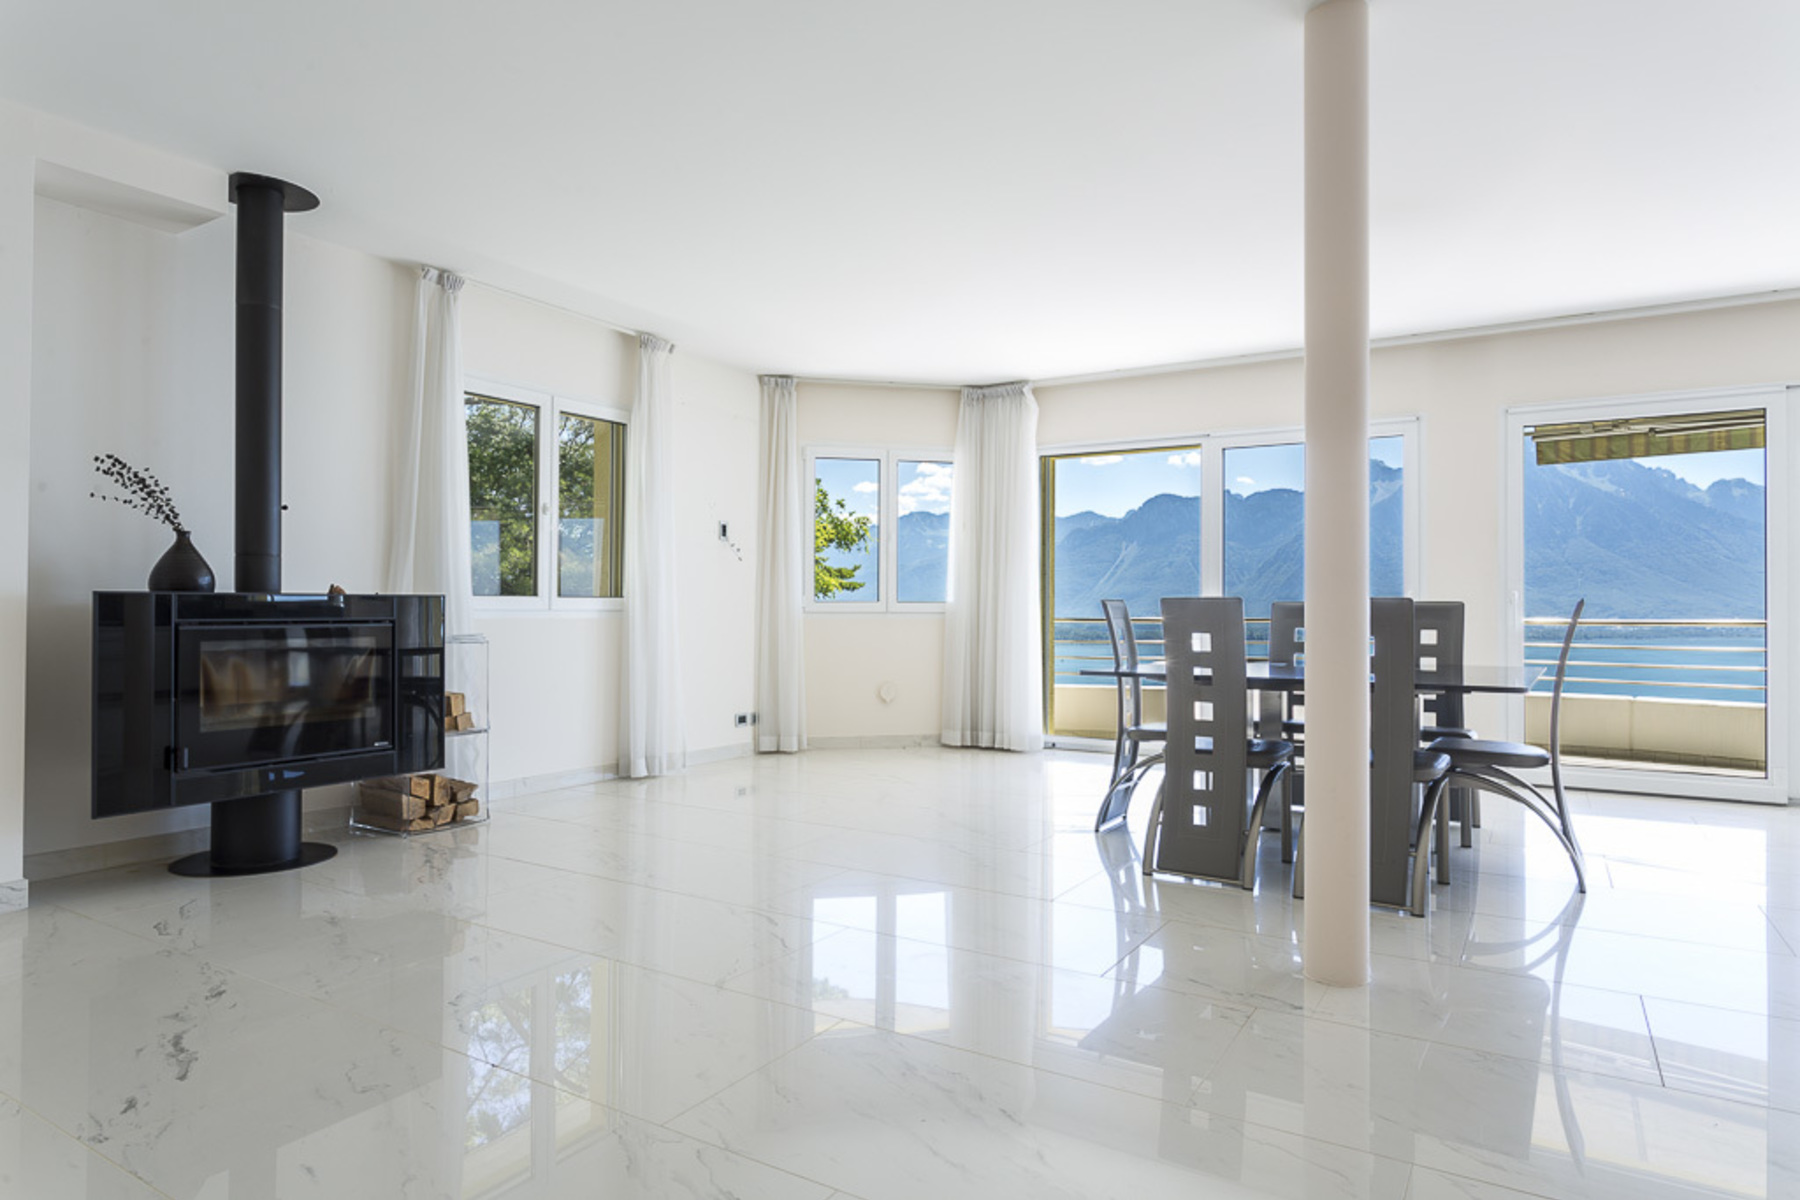 Additional photo for property listing at Stunning 4.5 room apartment enjoying total peace and quiet Unobstructed views o Territet Montreux, Во 1820 Швейцария